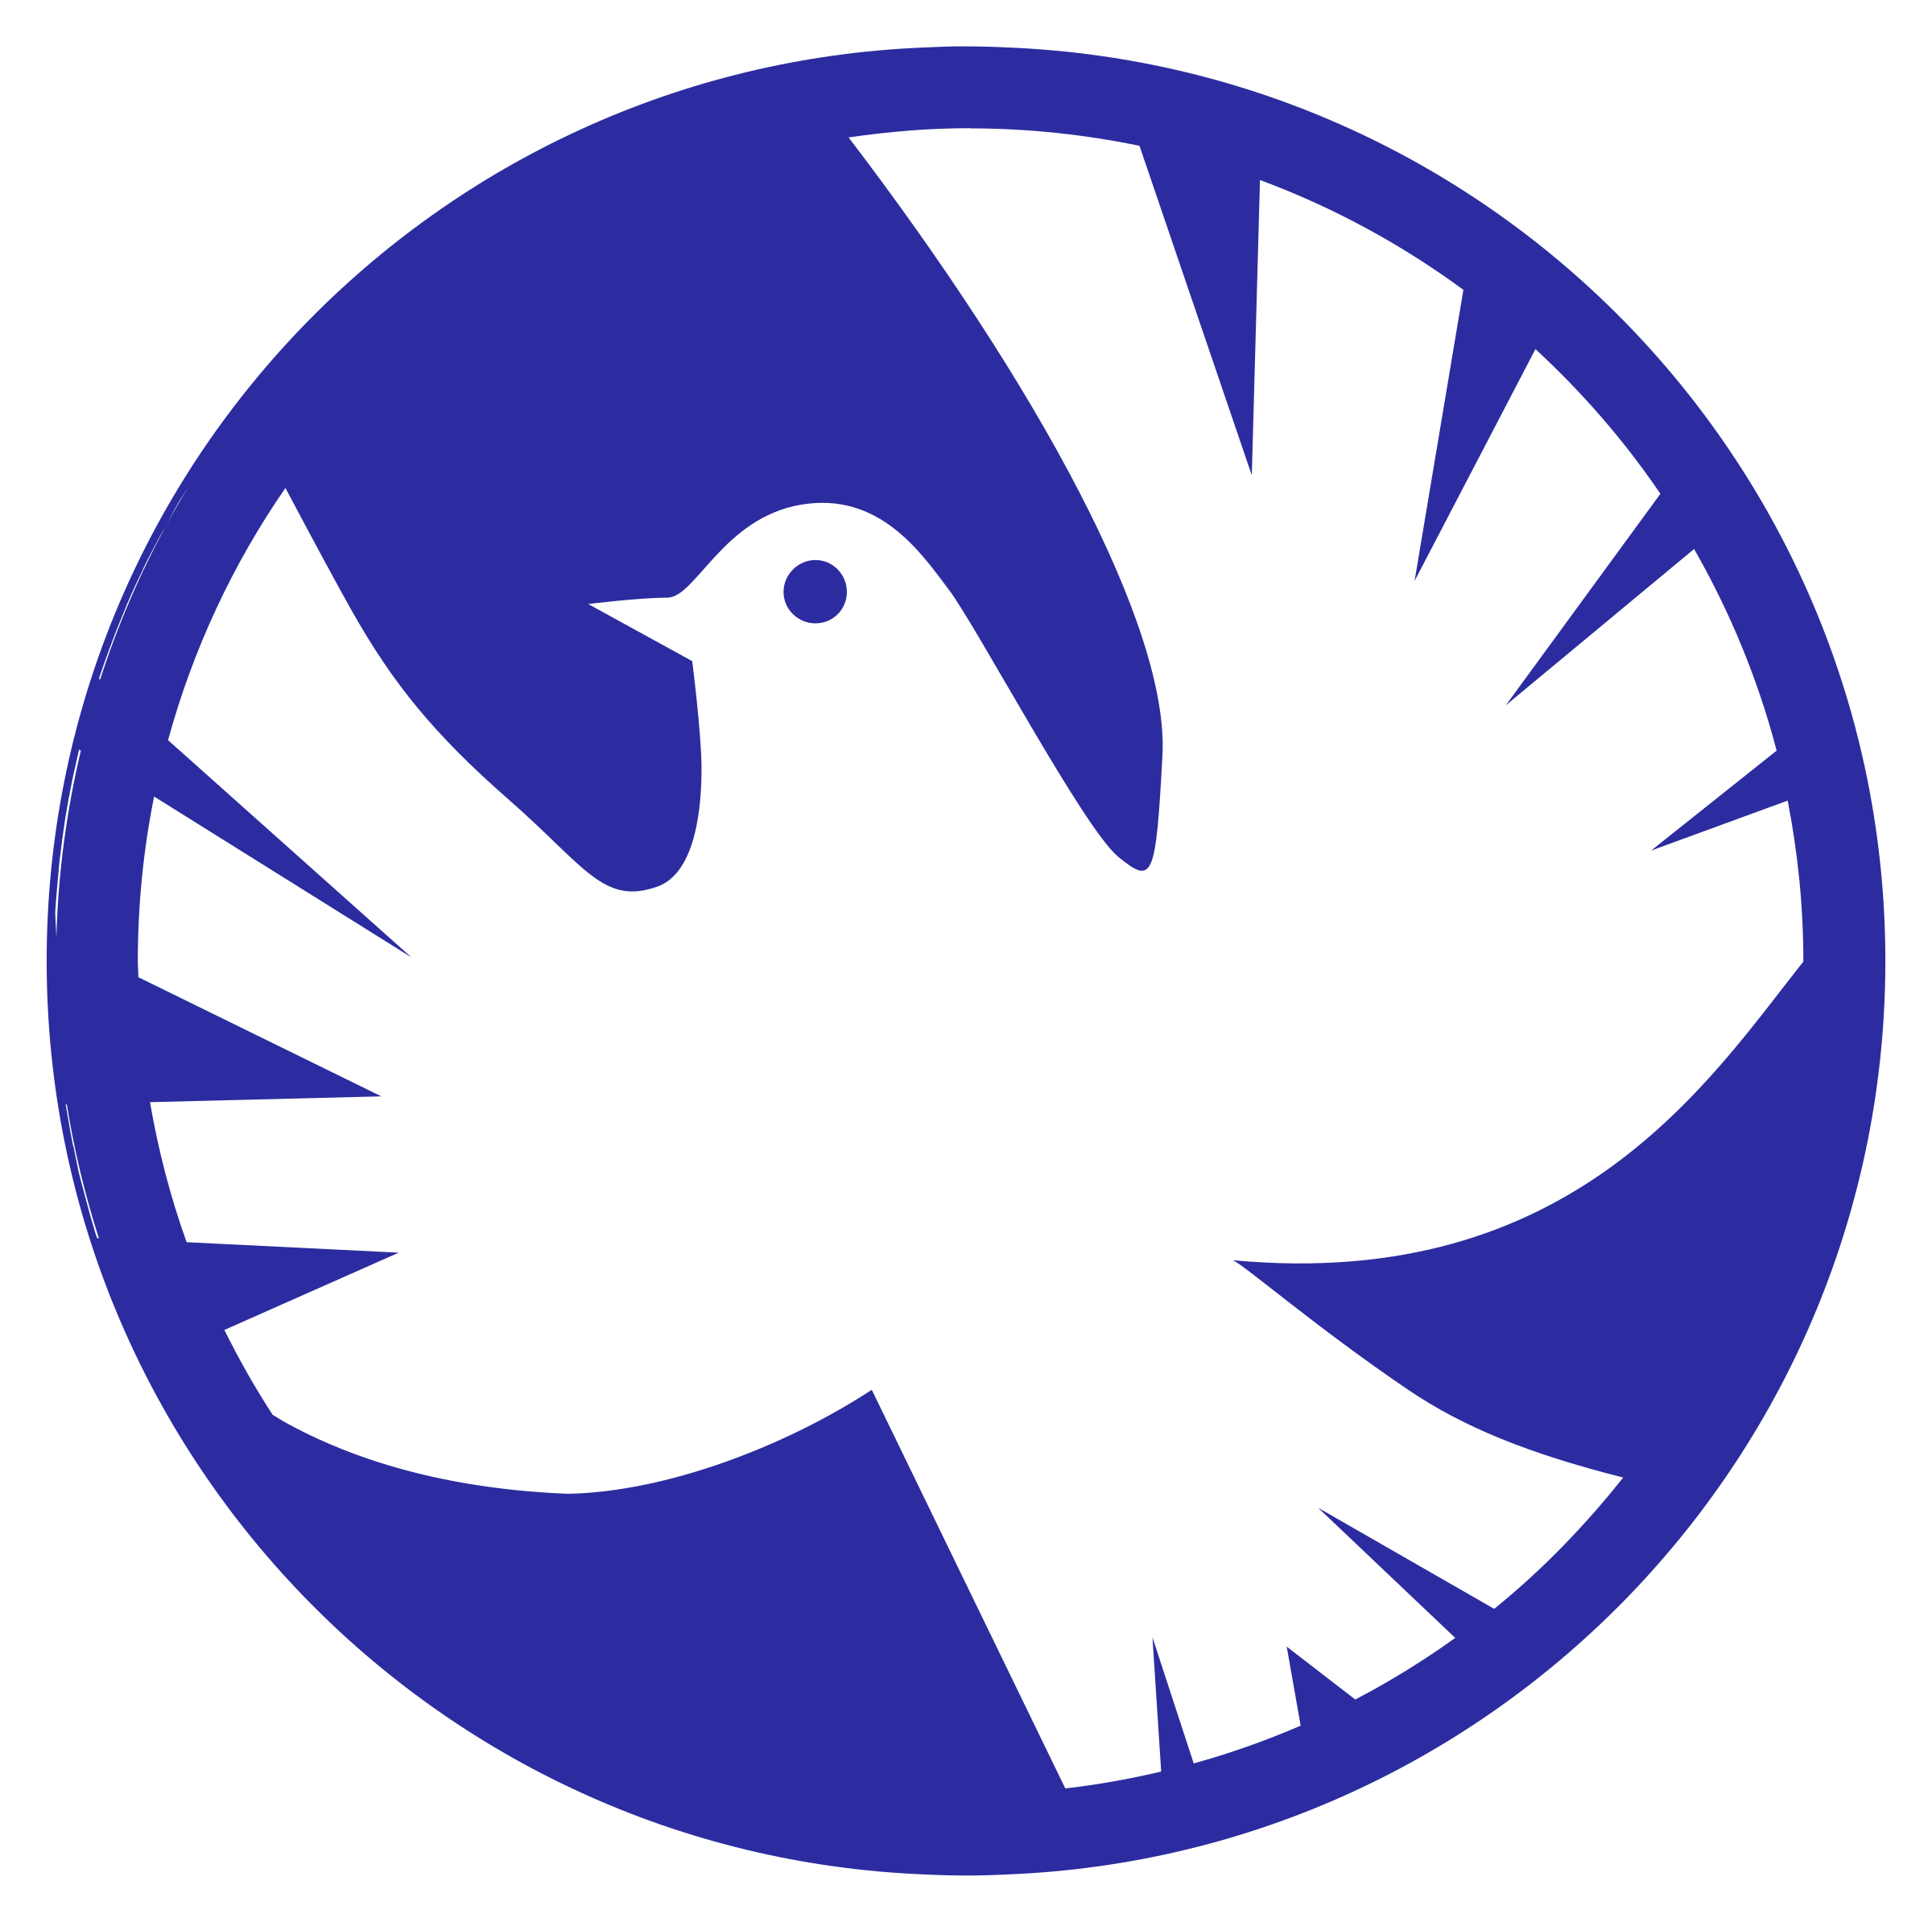 peace dove by worker